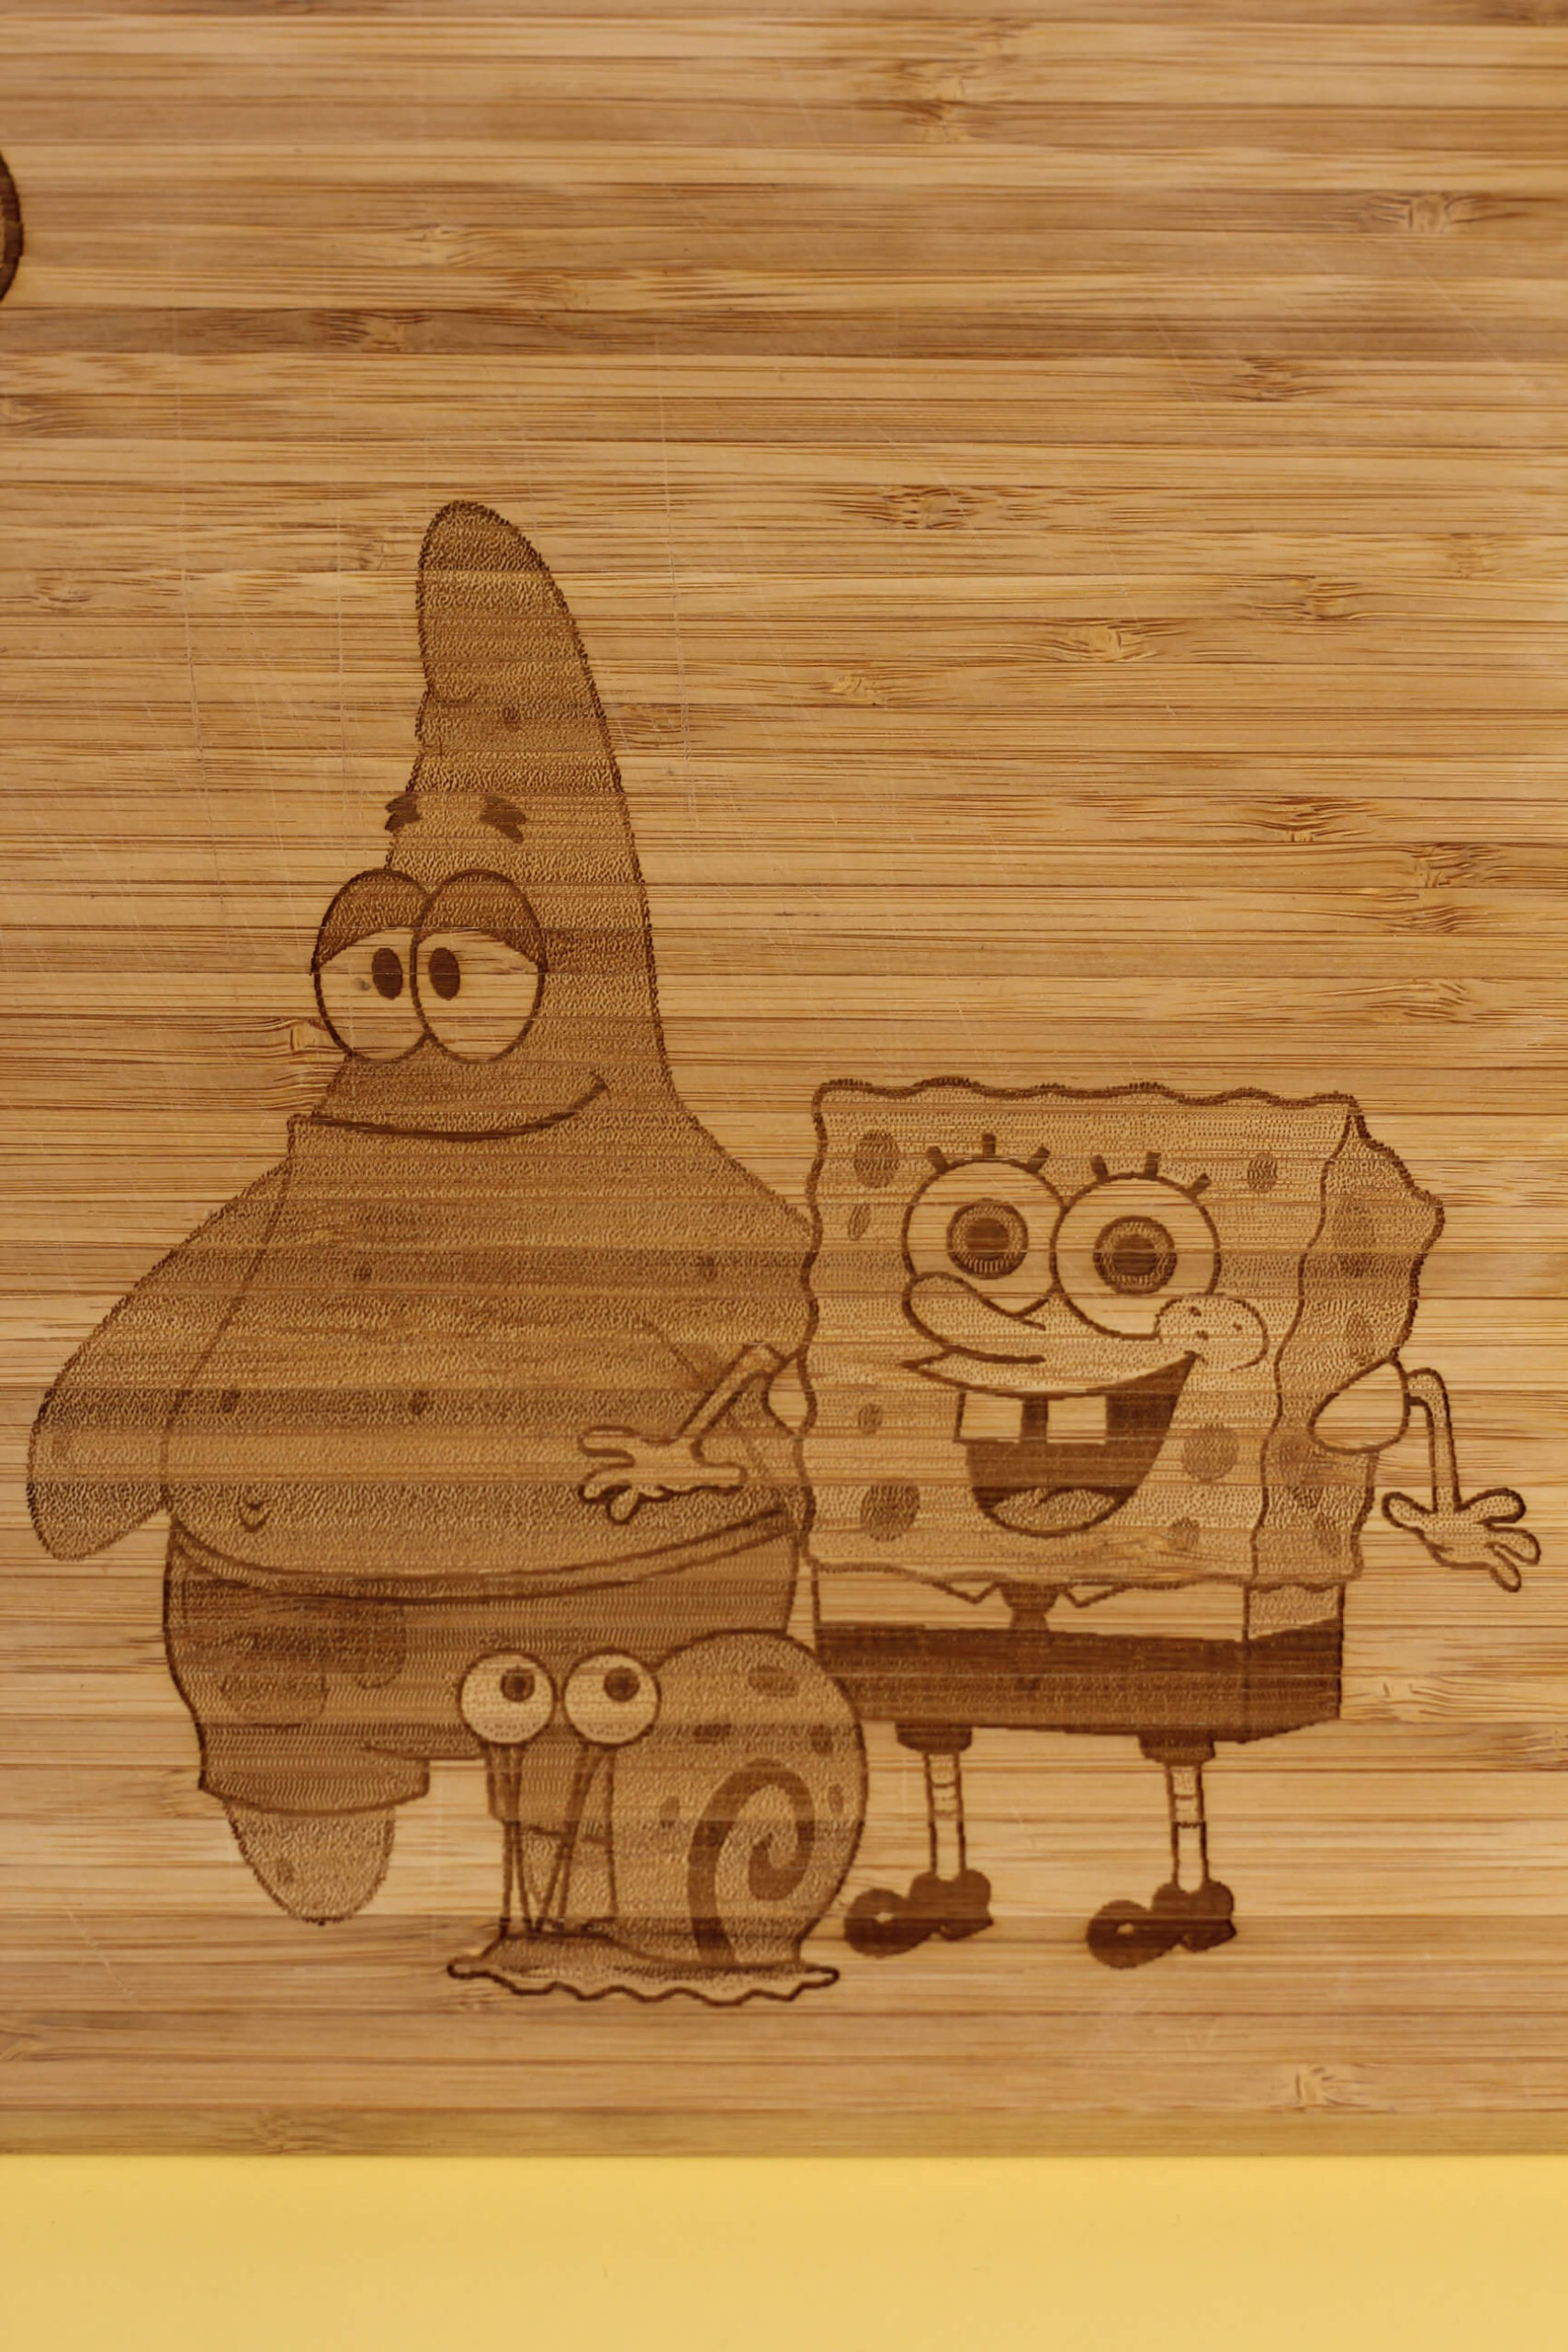 Spongebob-and-Patrick-on-ATOMSTACK-A5-2